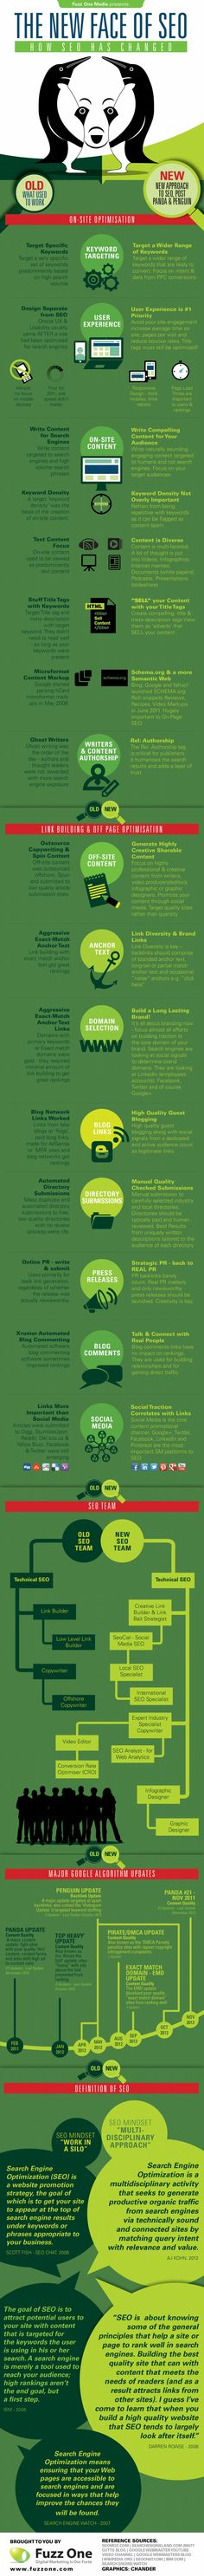 The New Face of SEO: How SEO Has Changed [Infographic]